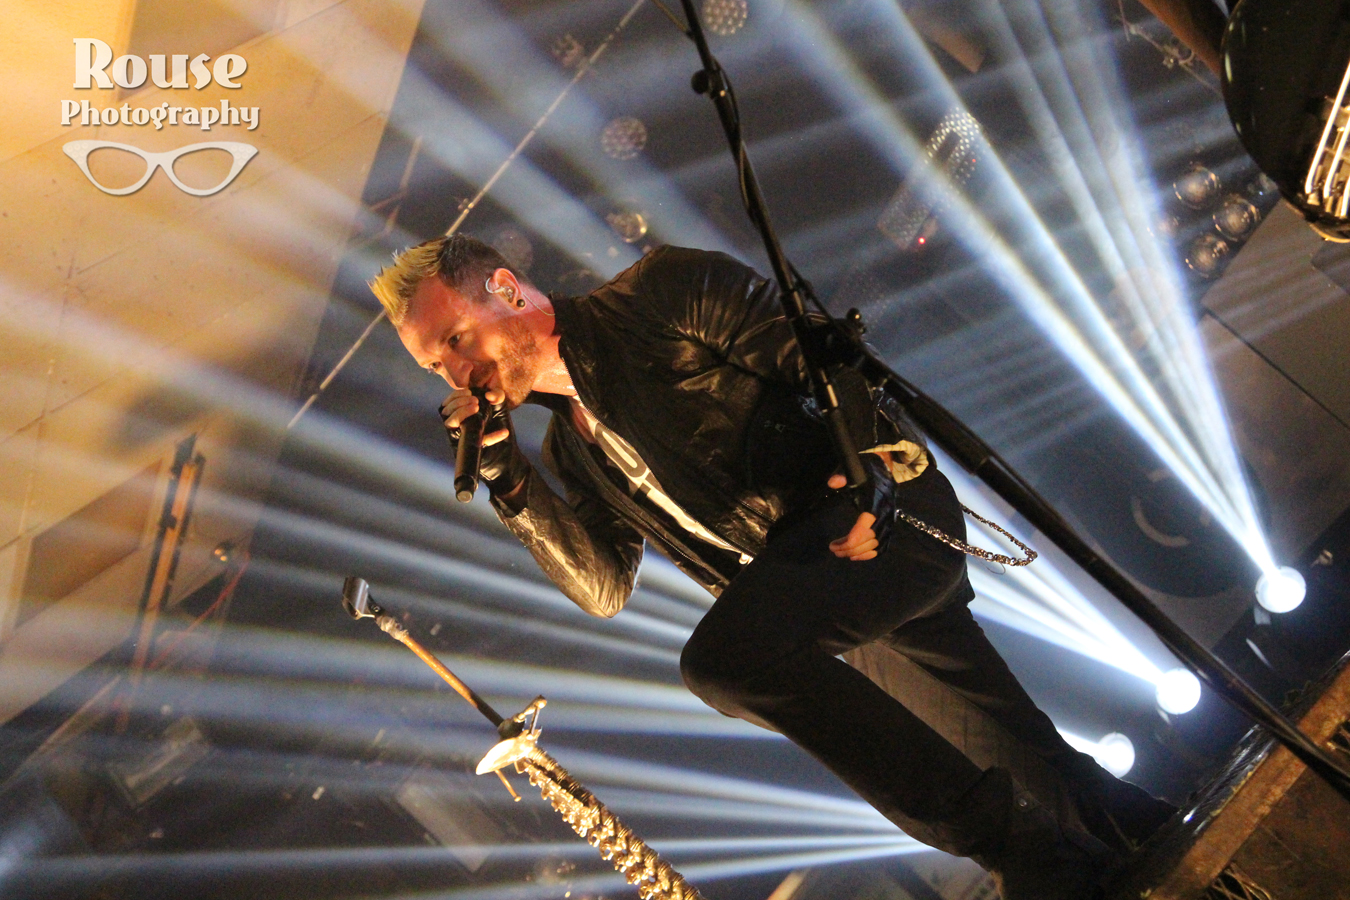 Thousand Foot Krutch at Piere's in Fort Wayne, IN on 17-Oct-2014